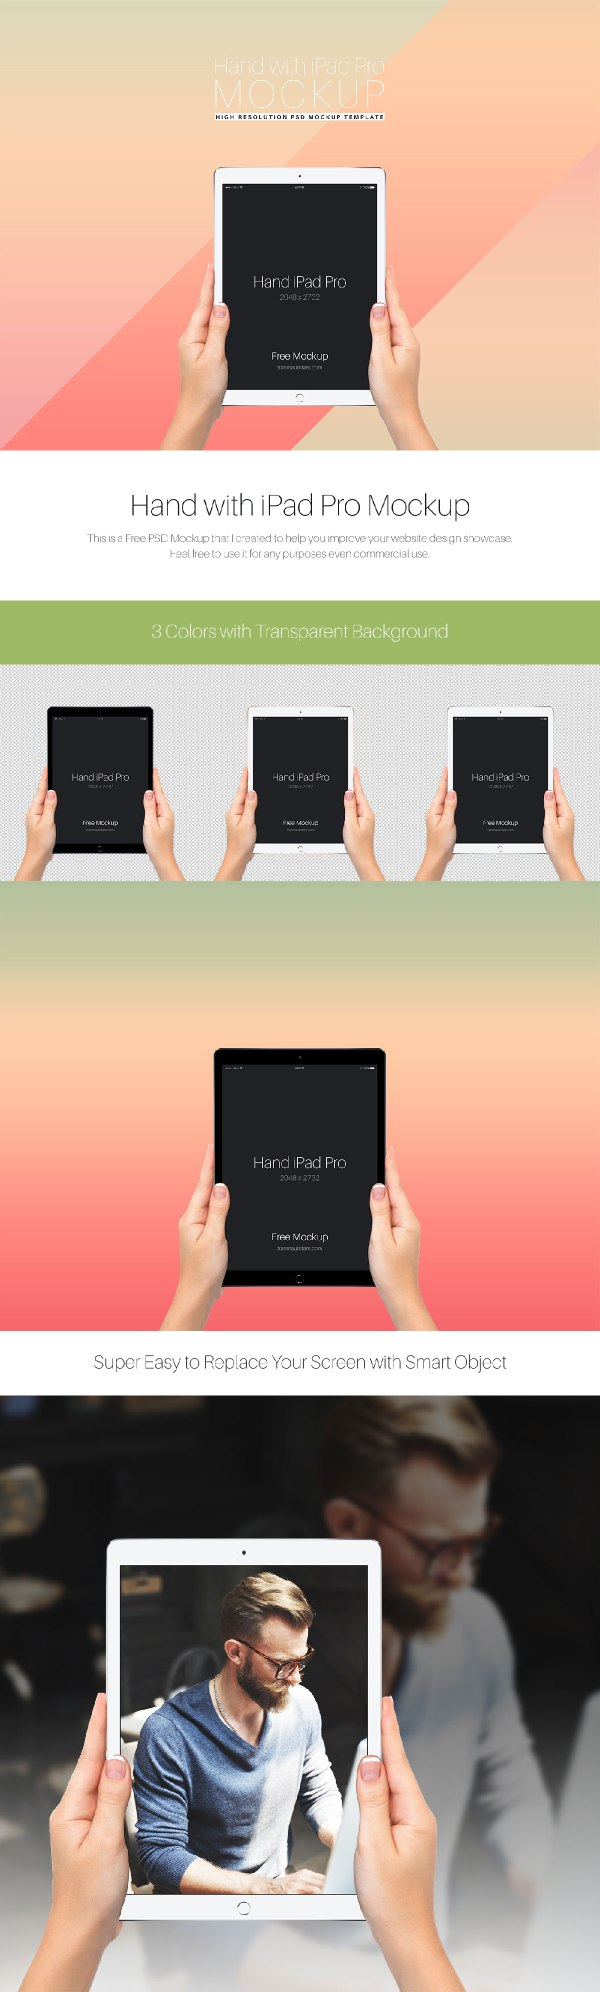 Free Mockup - Free iPad Pro Mockup held by hands